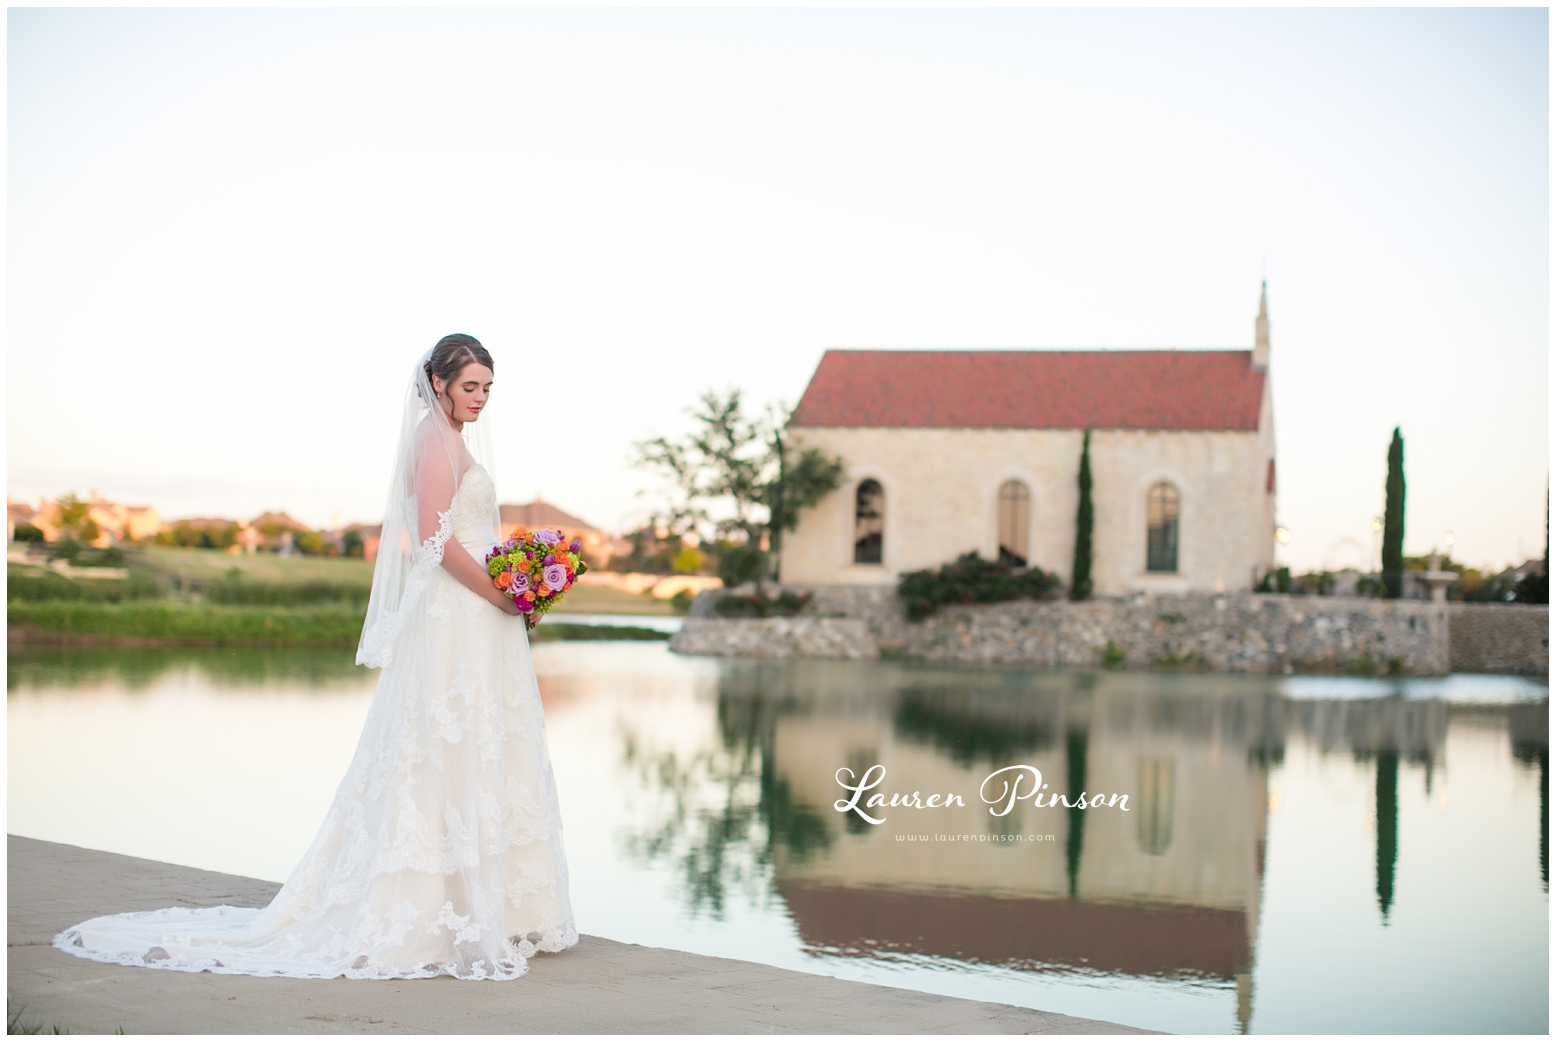 adriactica-village-bella-donna-chapel-mckinney-texas-wedding-photographer-sherman-northtexas-bridal-portraits-photography_0198.jpg